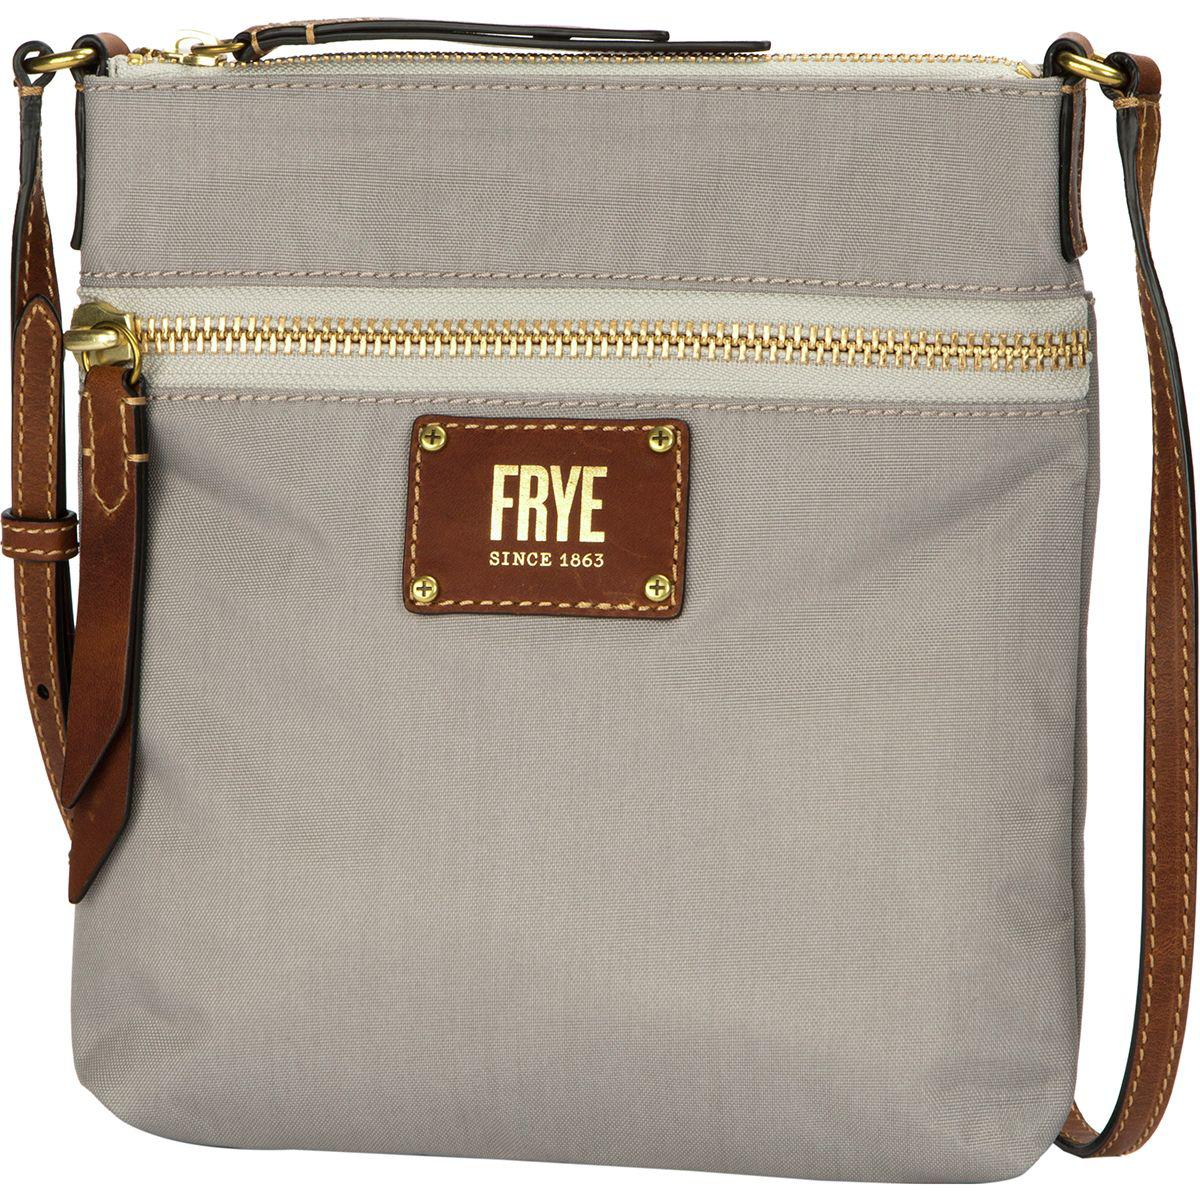 b5b689b0468d Lyst - Frye Ivy Crossbody Purse in Gray - Save 26.050420168067234%